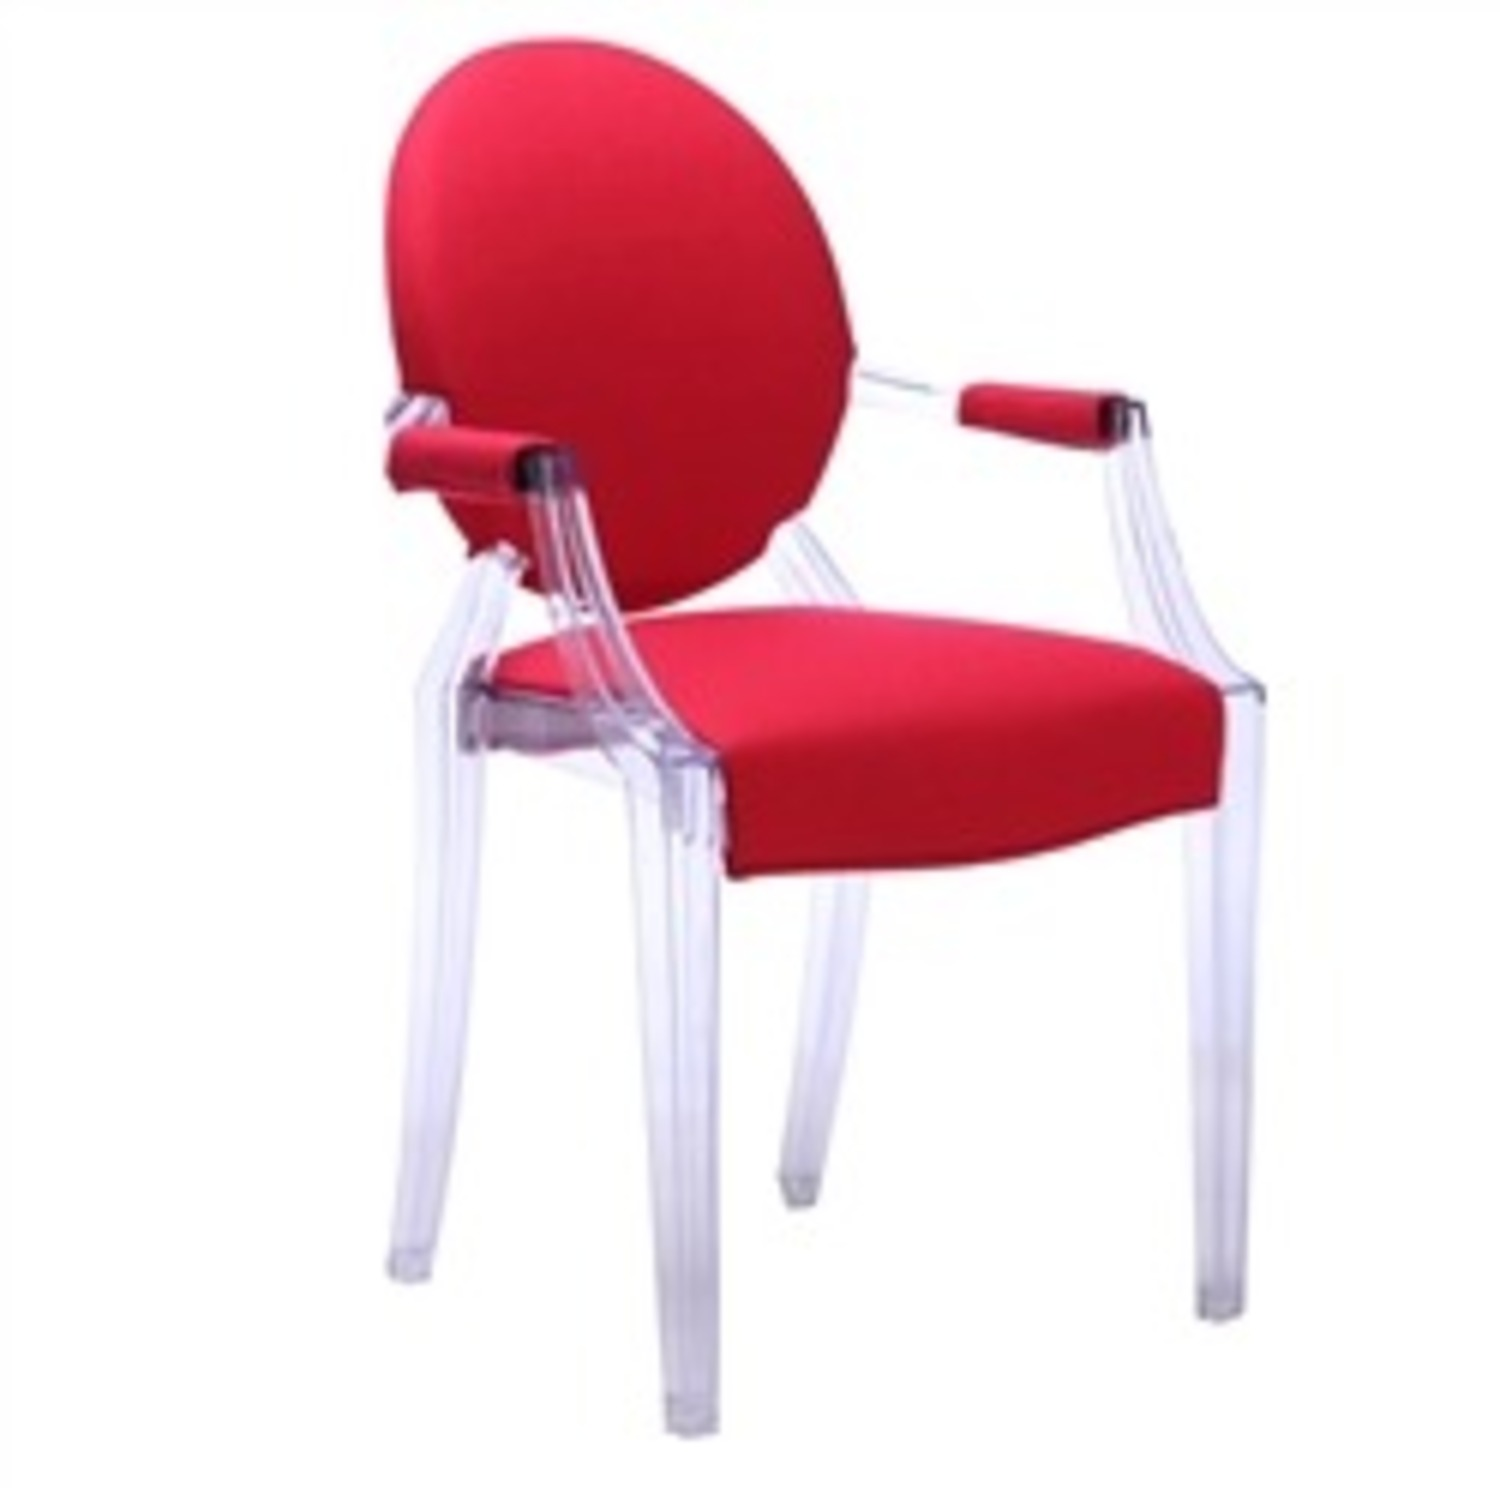 Armchair In Red Fabric & Acrylic Base - image-1